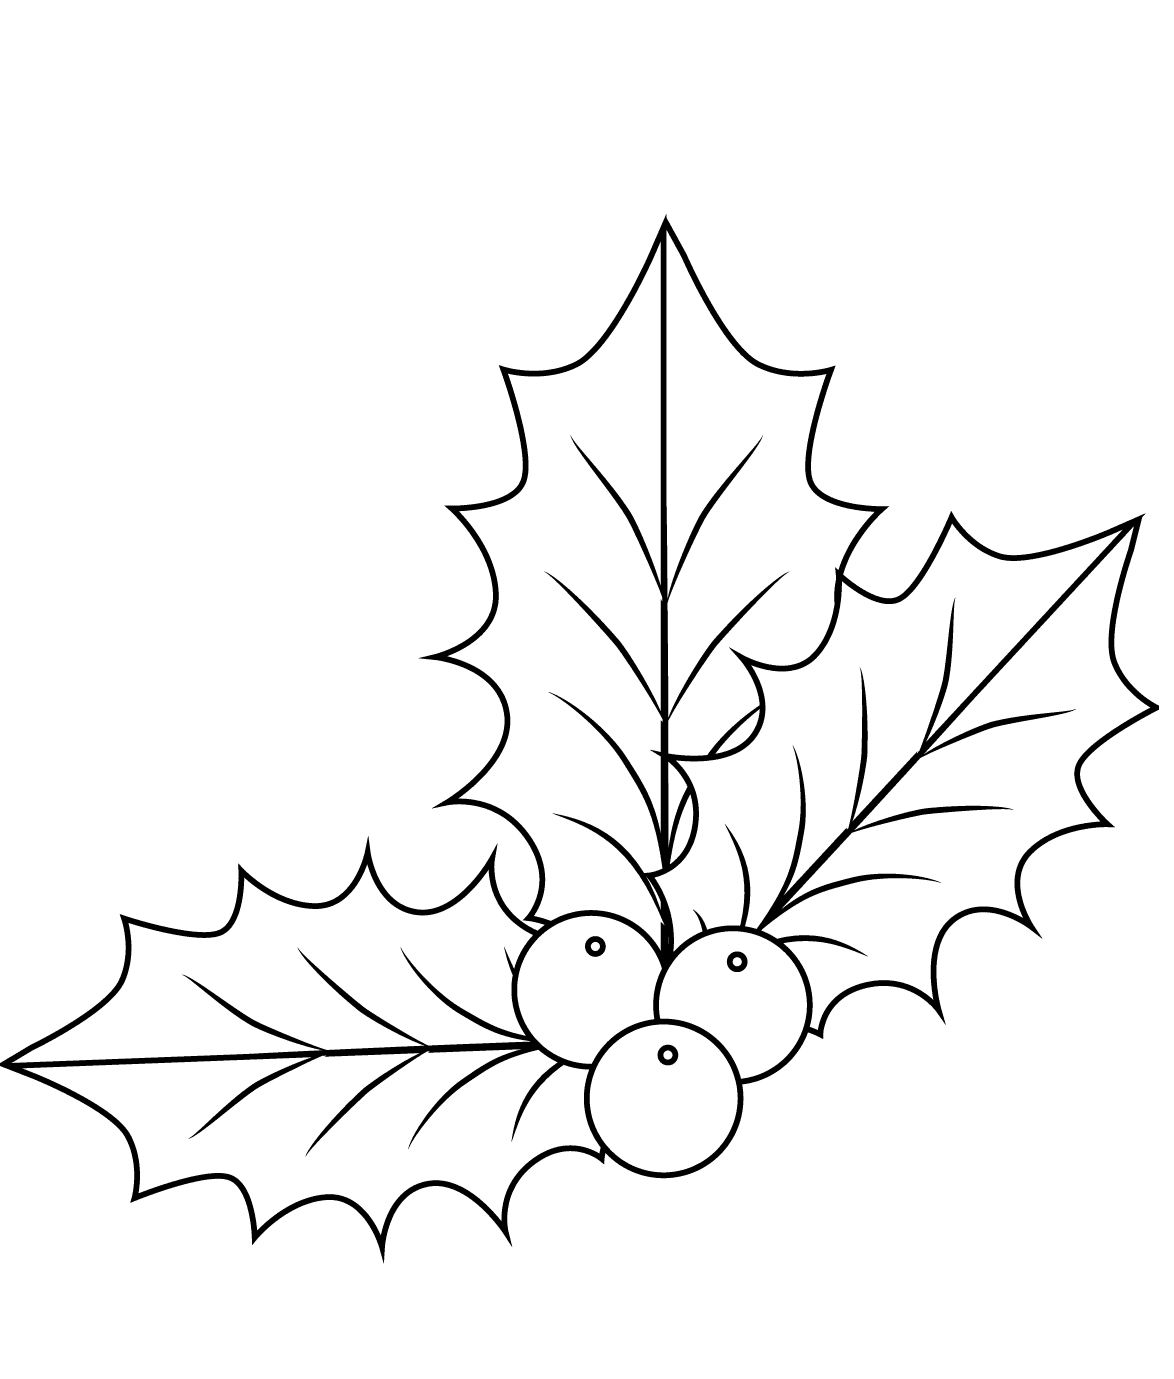 Holly leaves coloring page